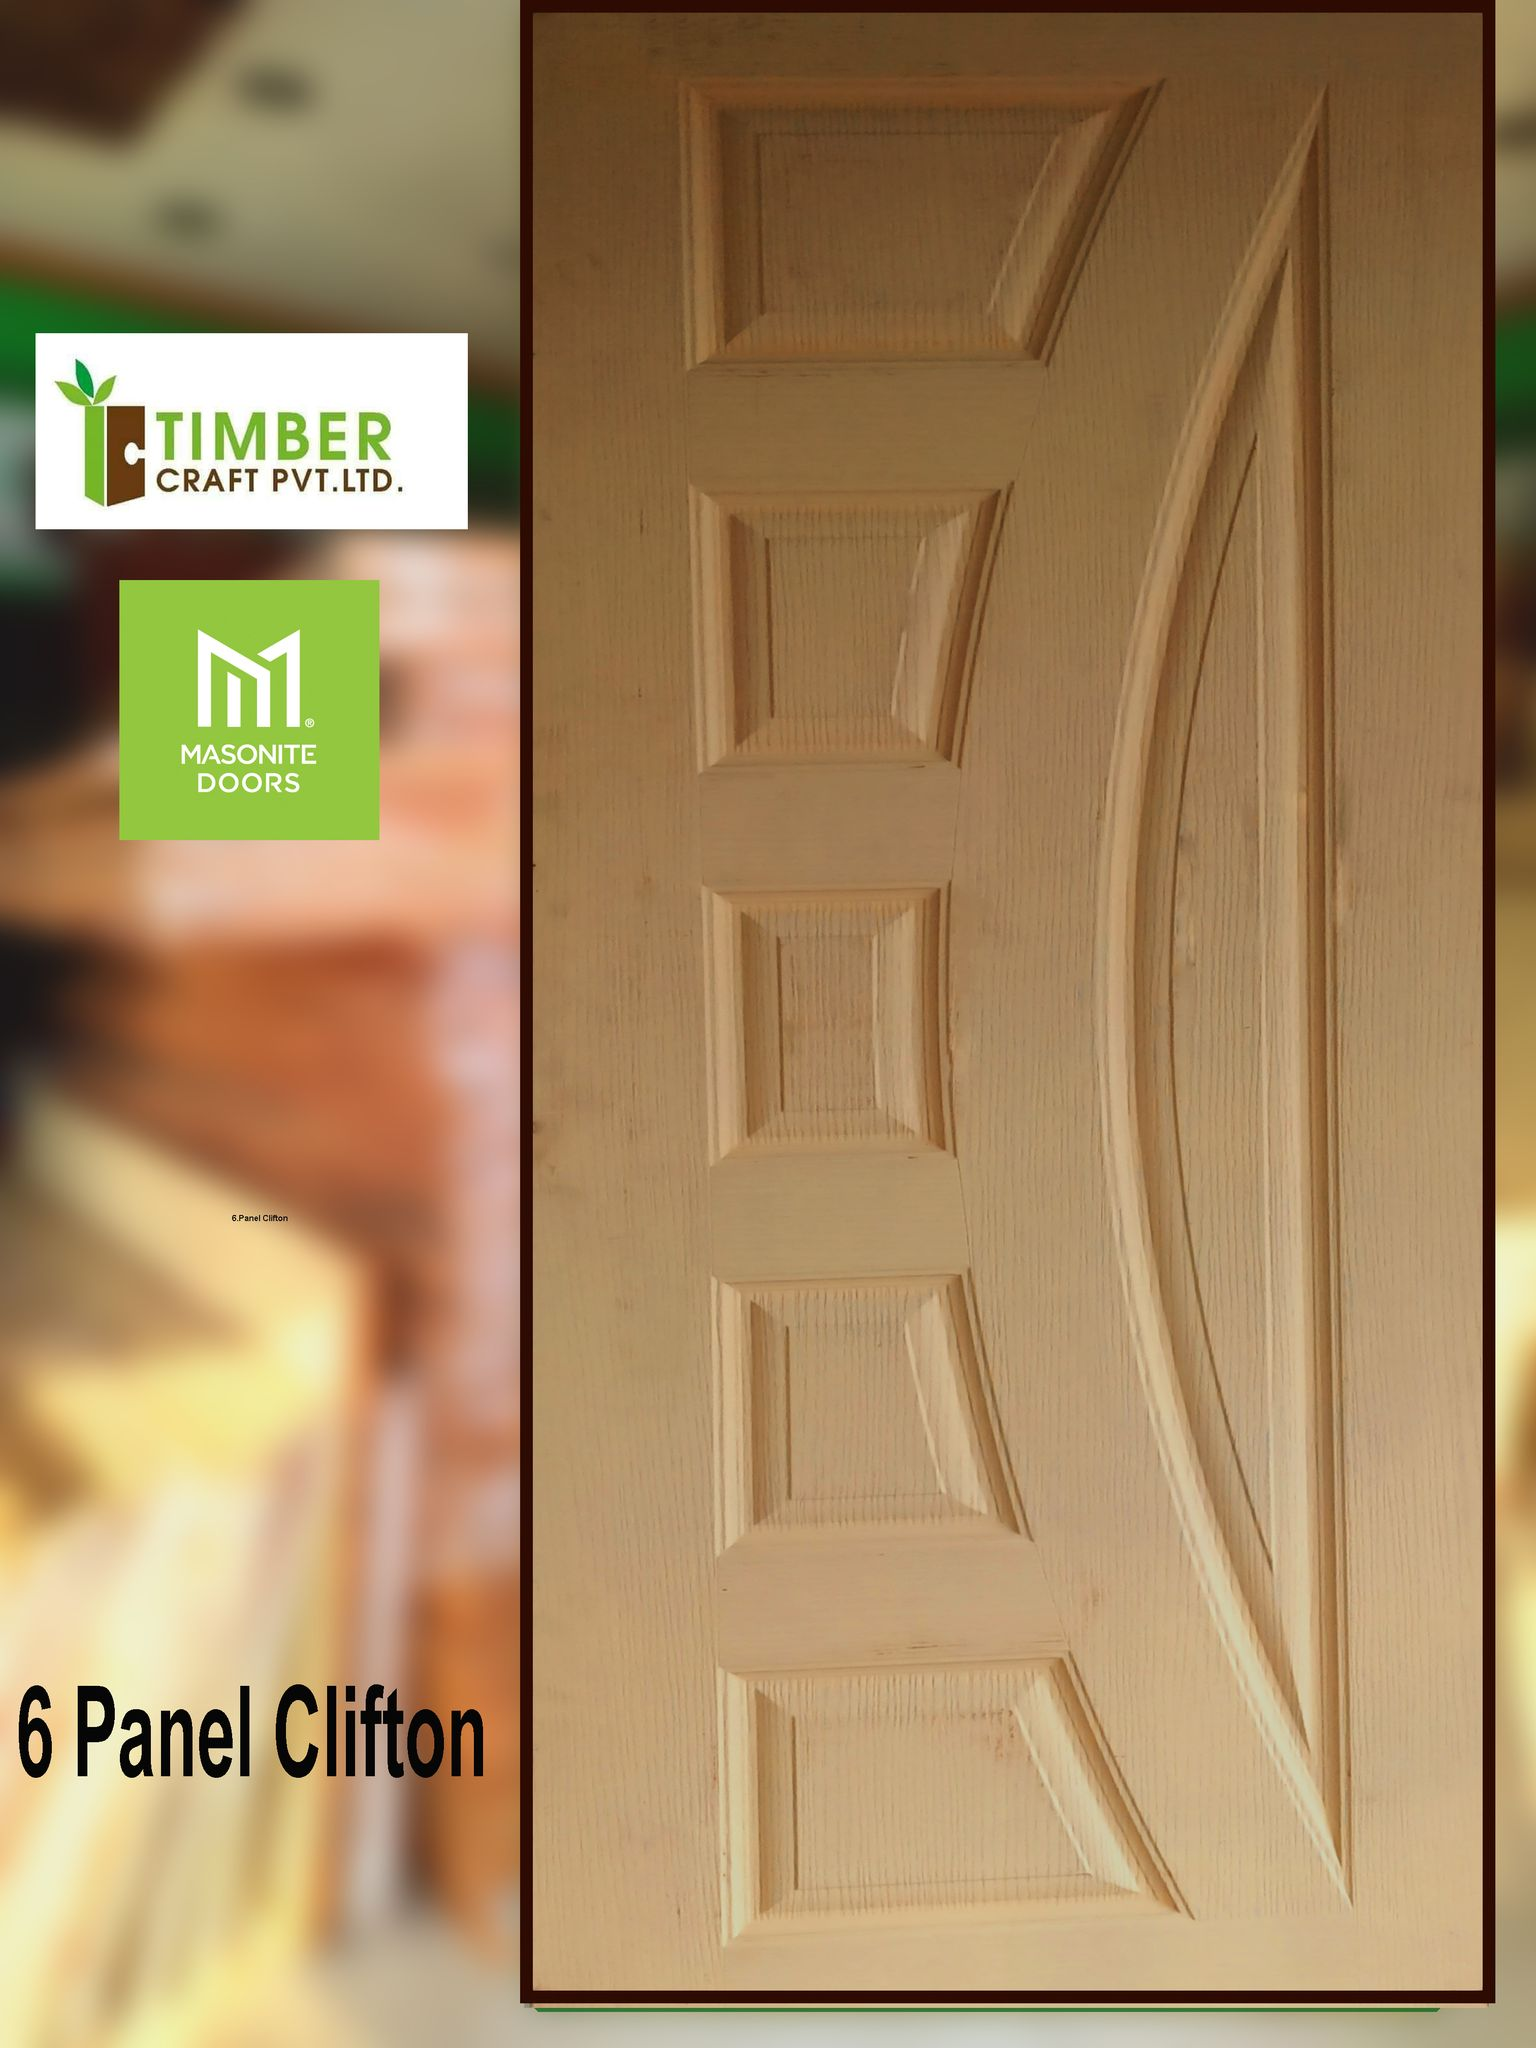 6  Panel Clifton Design -Timber Craft  is national  Door manufacturer Company in  Nepal